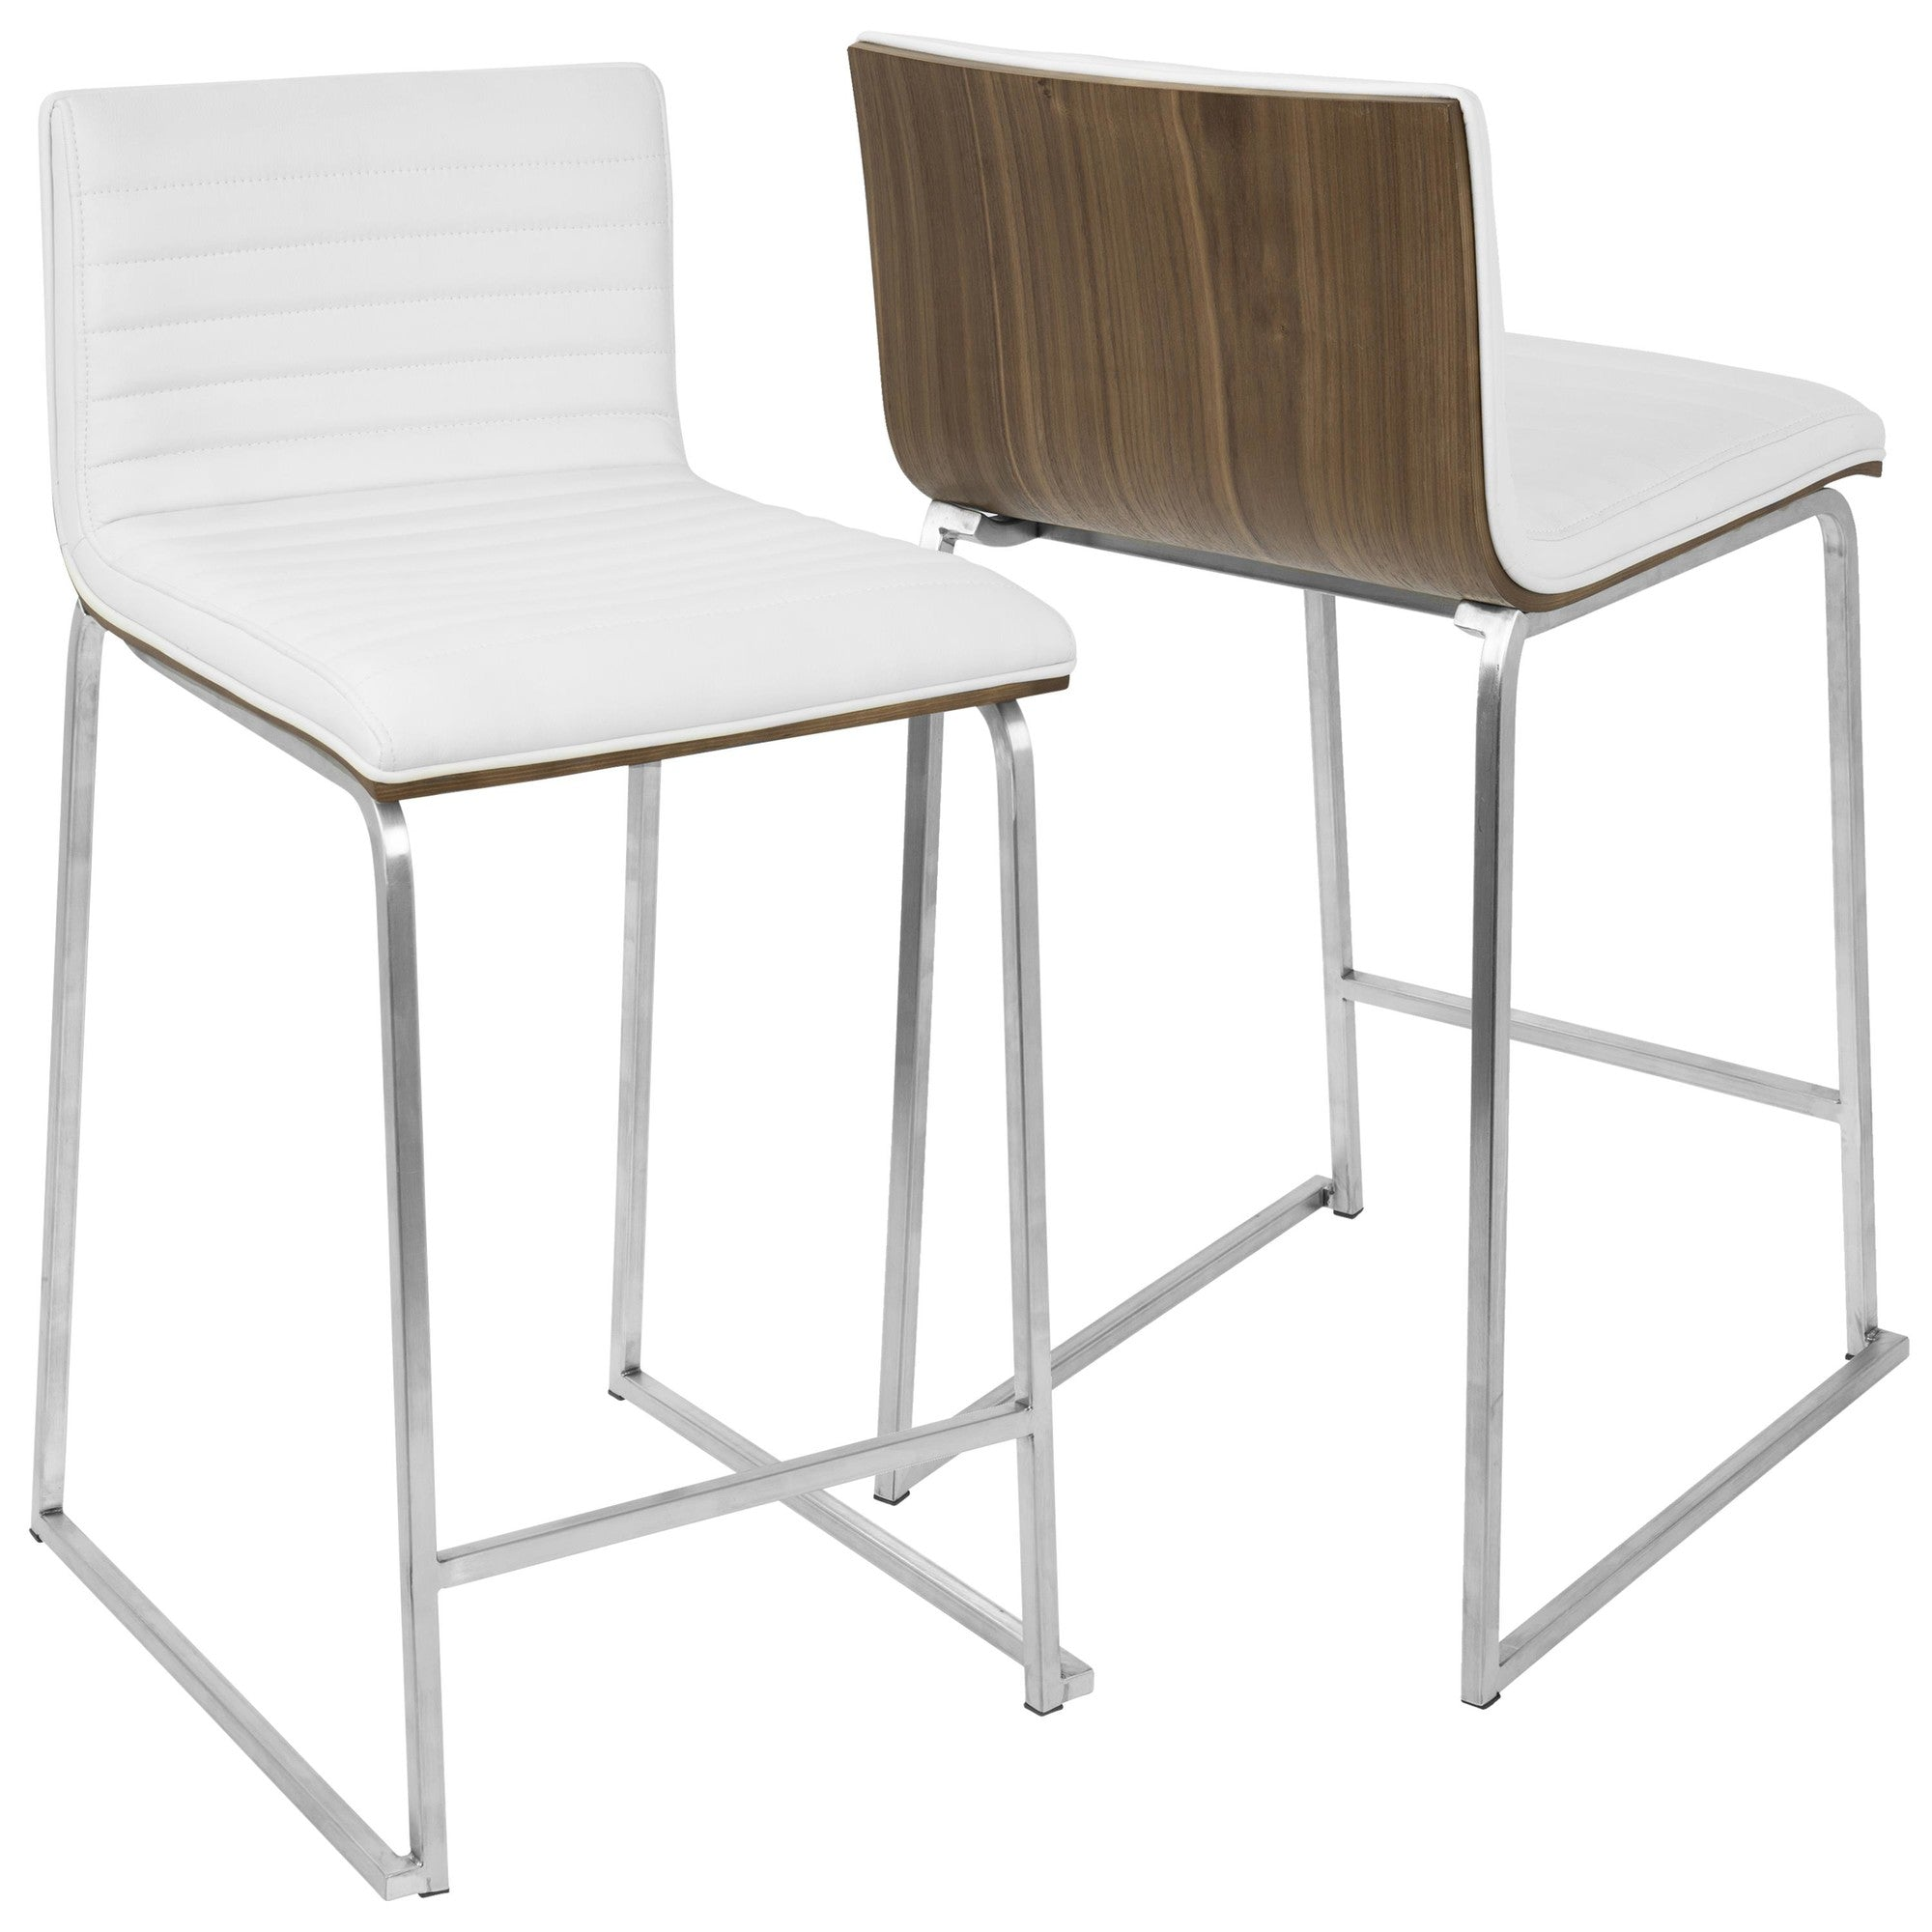 MARA COUNTER STOOL - SET OF 2